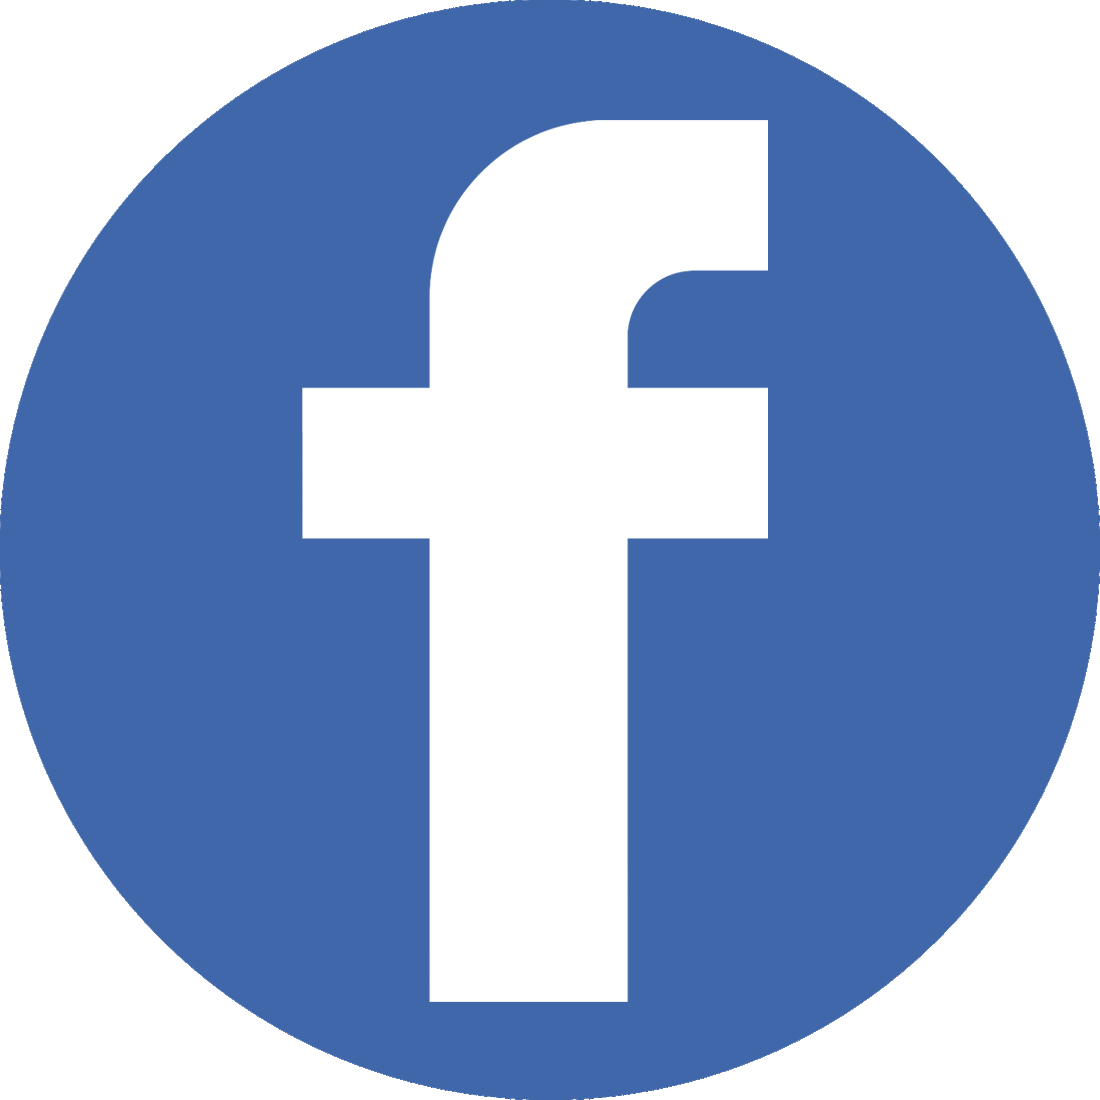 NVG Blog: Facebook icons, Facebook logo vector